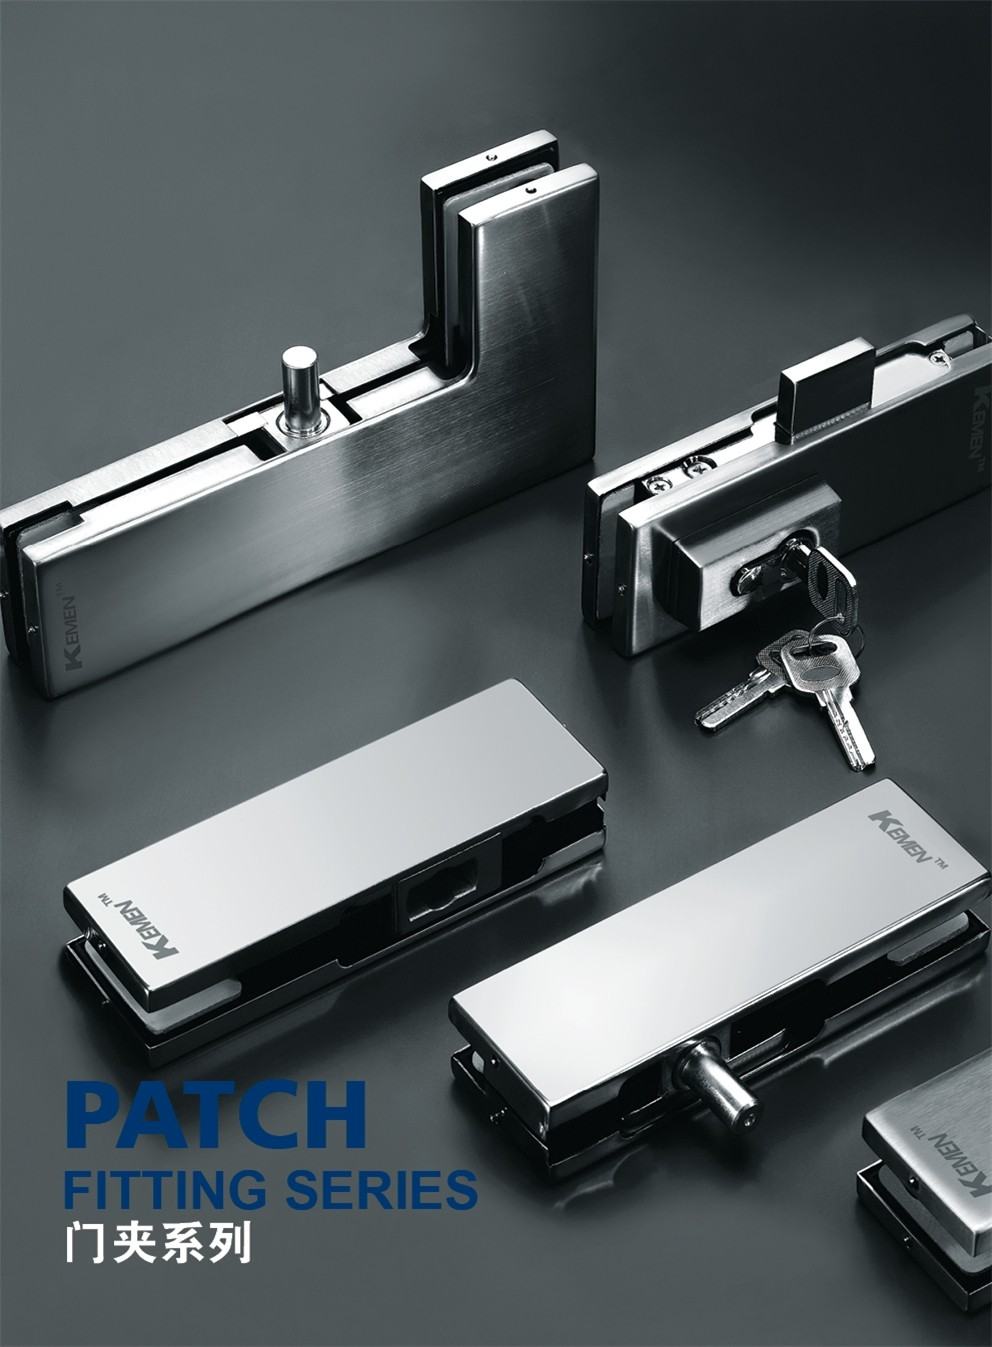 Patch fittings typical application for glass door with patch fittings - Curved Second Lock Patch Lock Clamp Of Glass Door Hardware Patch Fitting